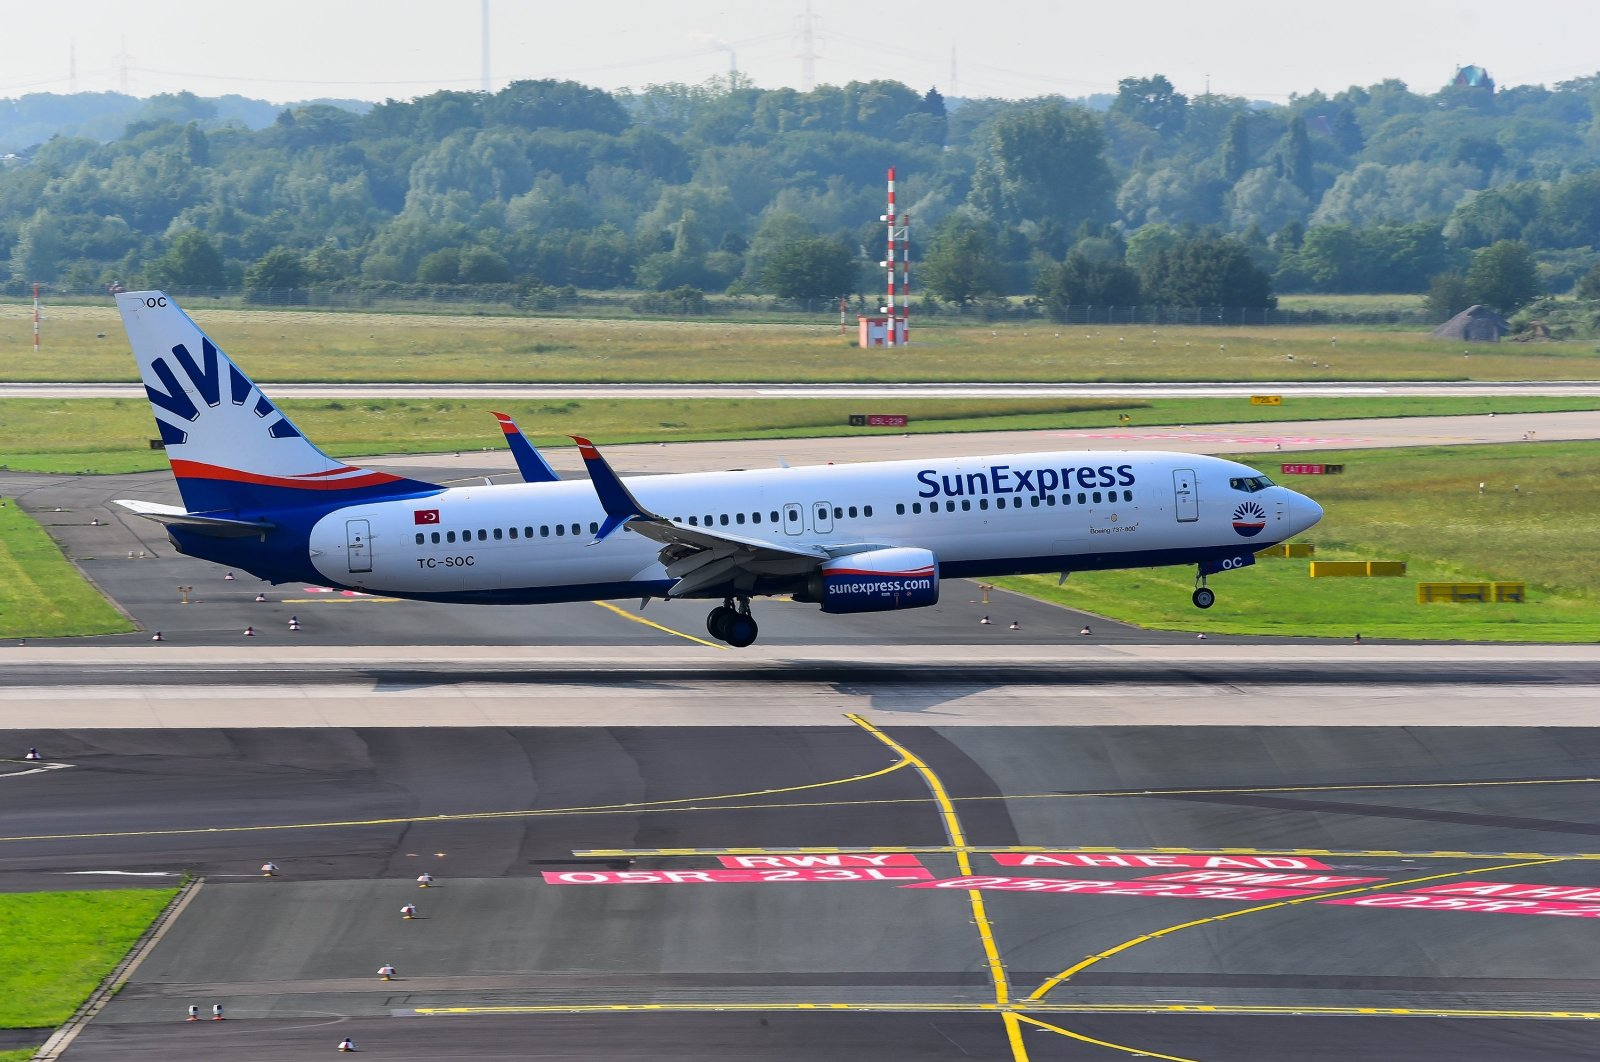 A SunExpress Airlines Boeing 737-800 is seen at the airport in Düsseldorf, Germany, June 3, 2018. (Shutterstock Photo)